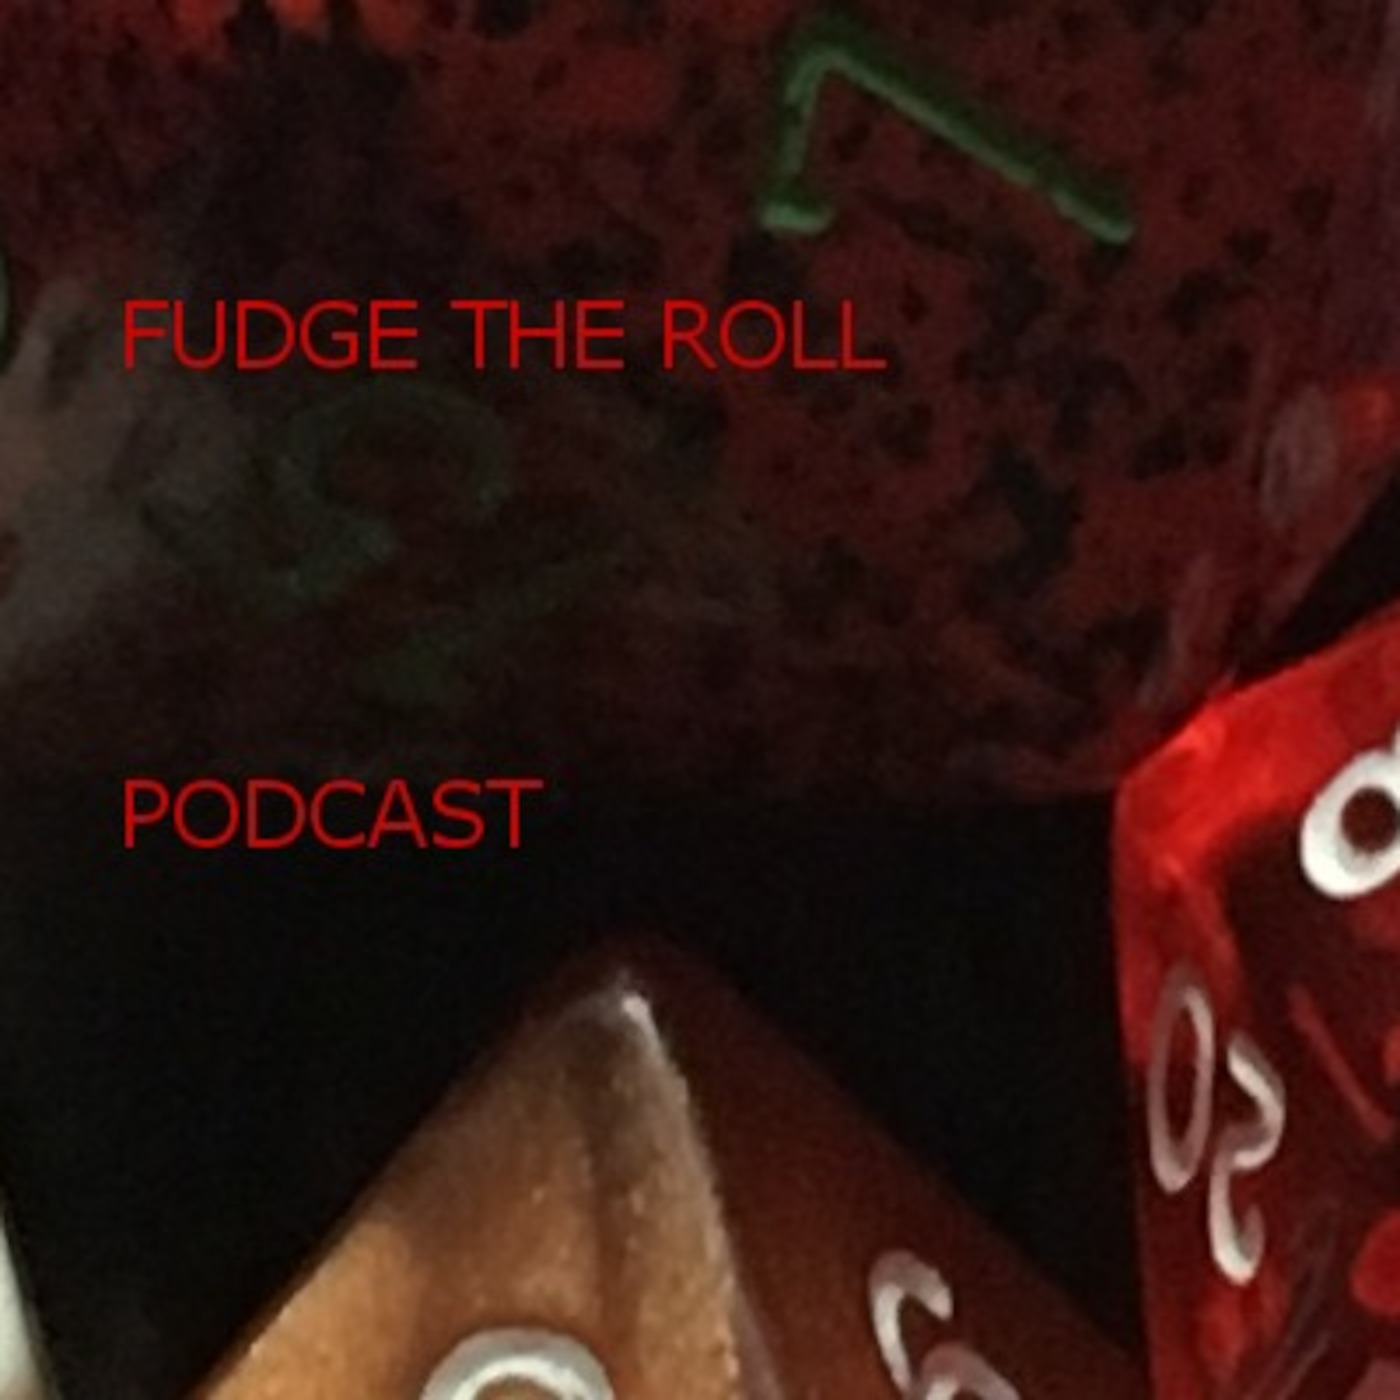 Fudge The Roll Podcast Ep 1 Fudge The Roll podcast